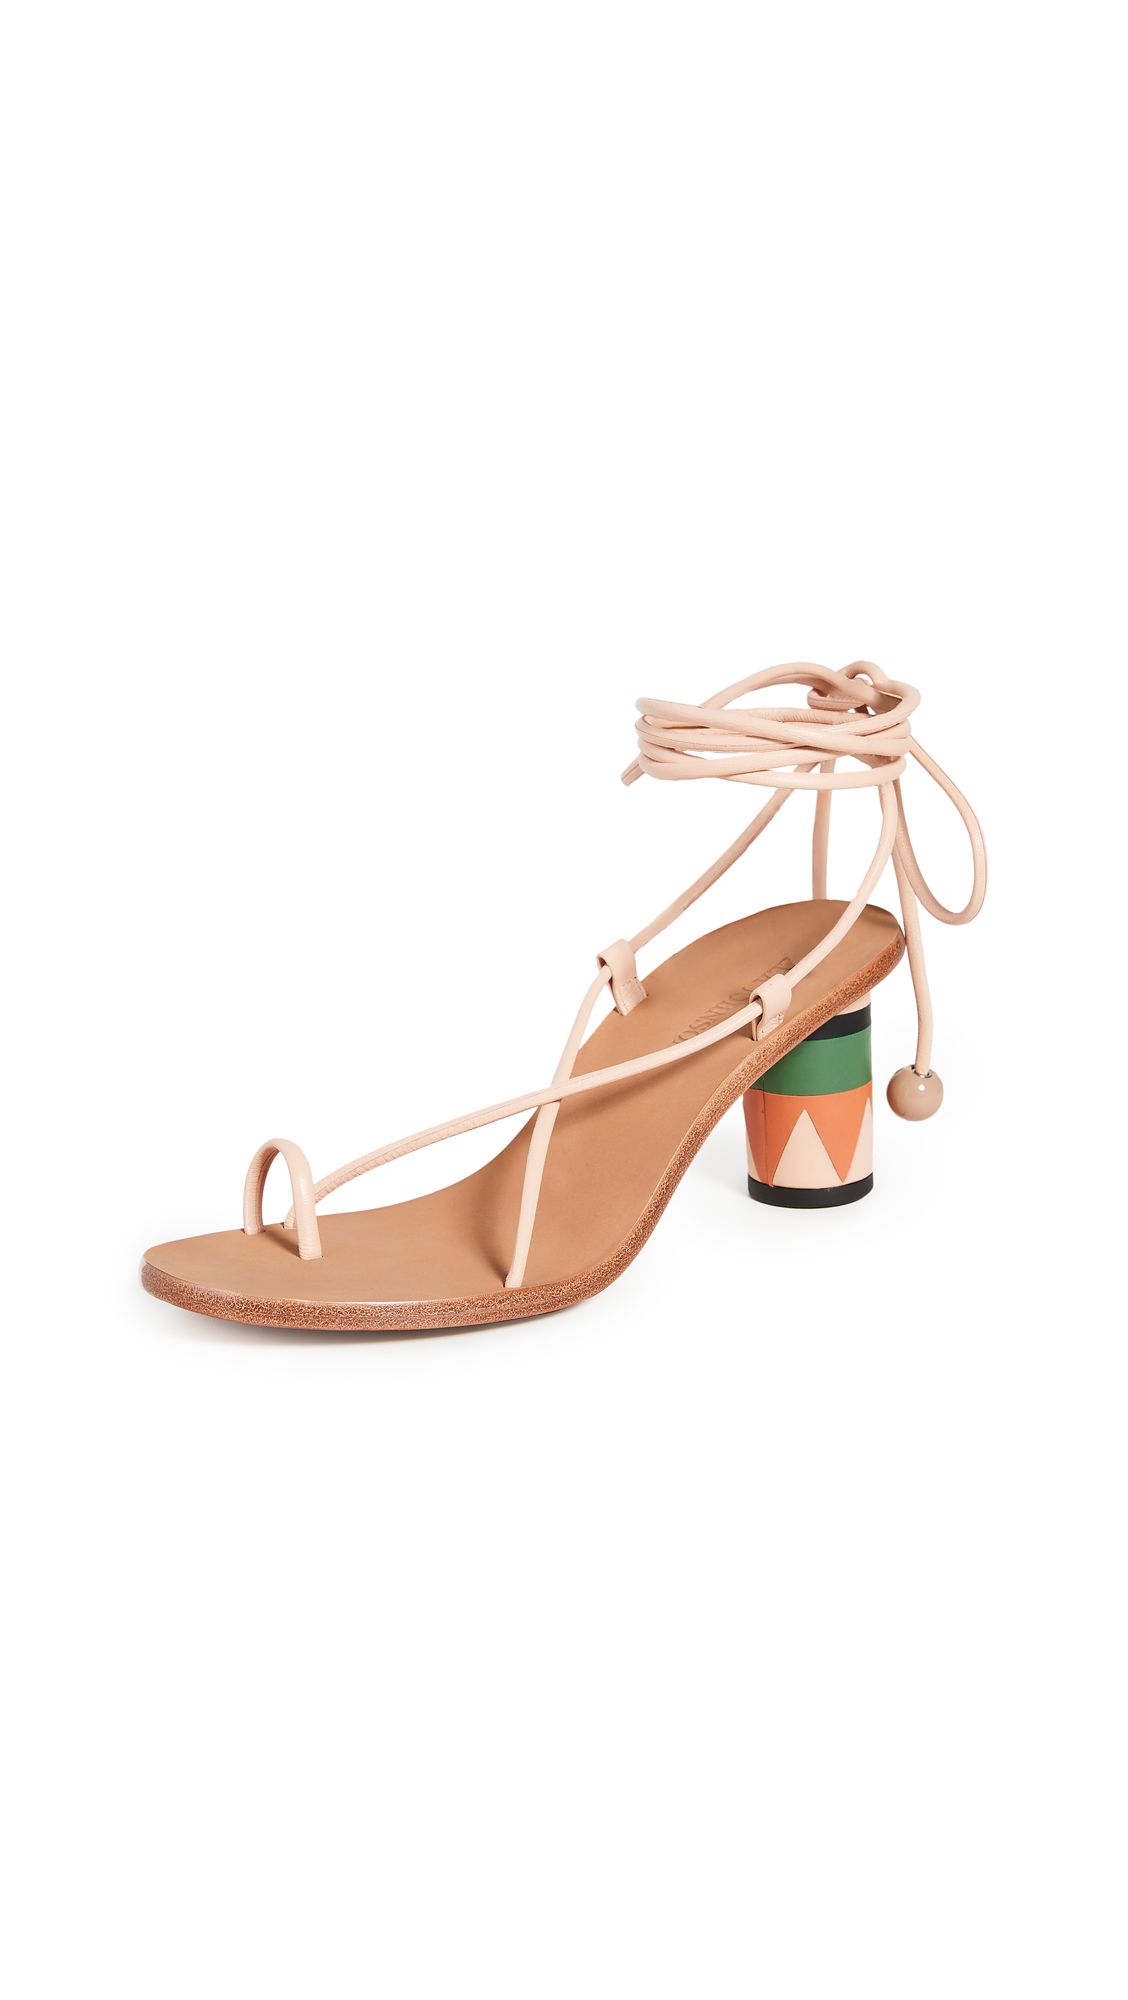 Buy Ulla Johnson Kaya Heel Sandals online, shop Ulla Johnson